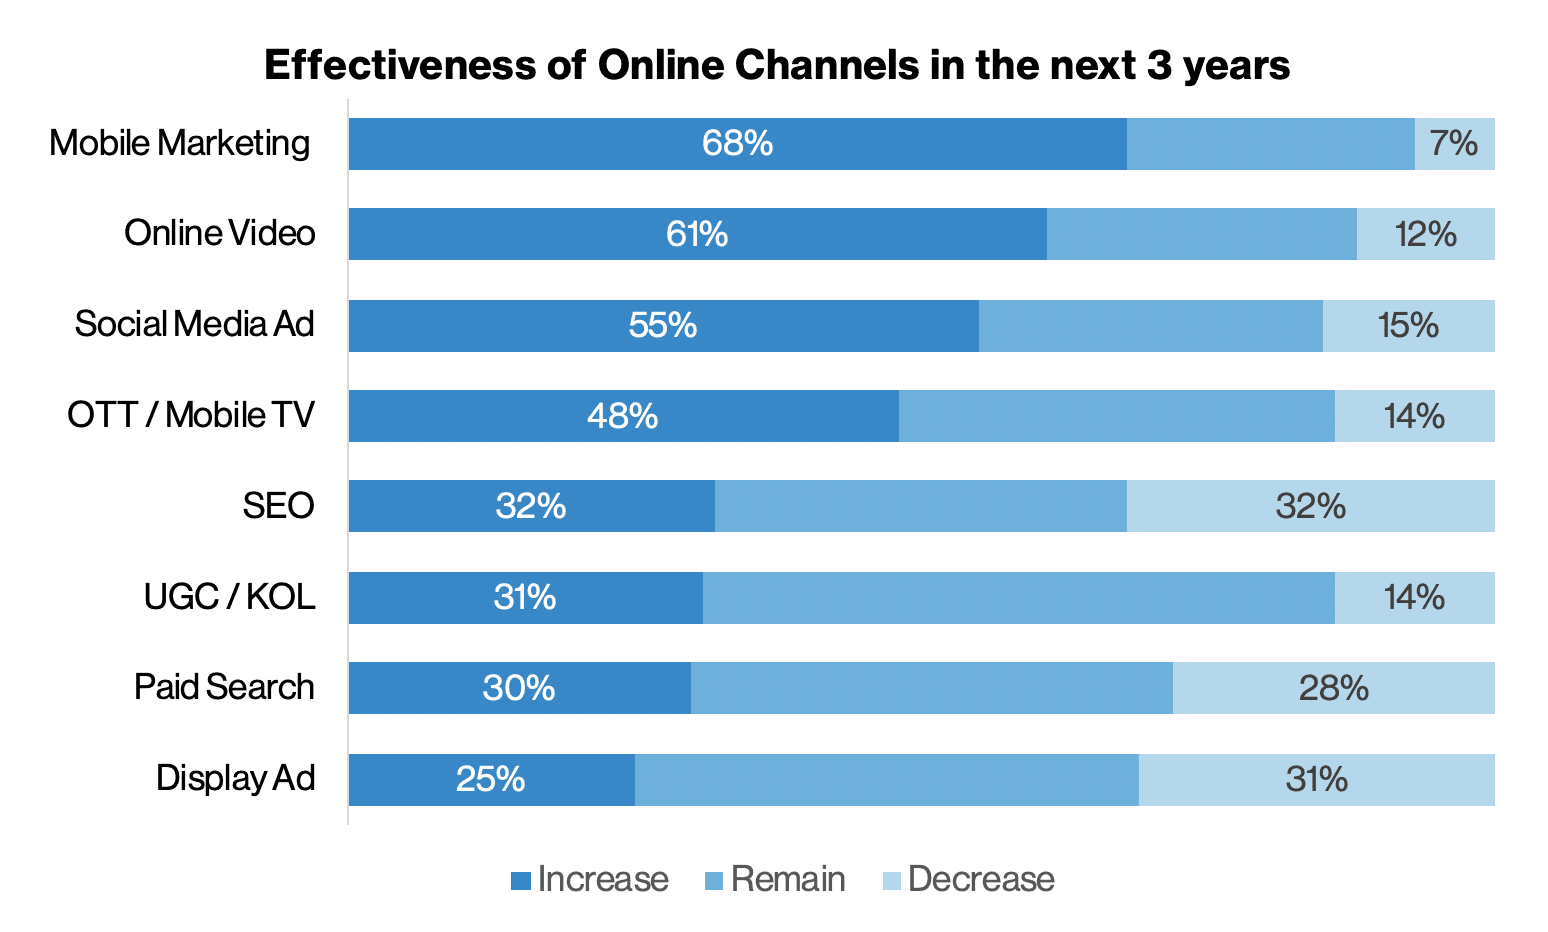 Effectiveness of Online Channels in the next 3 years